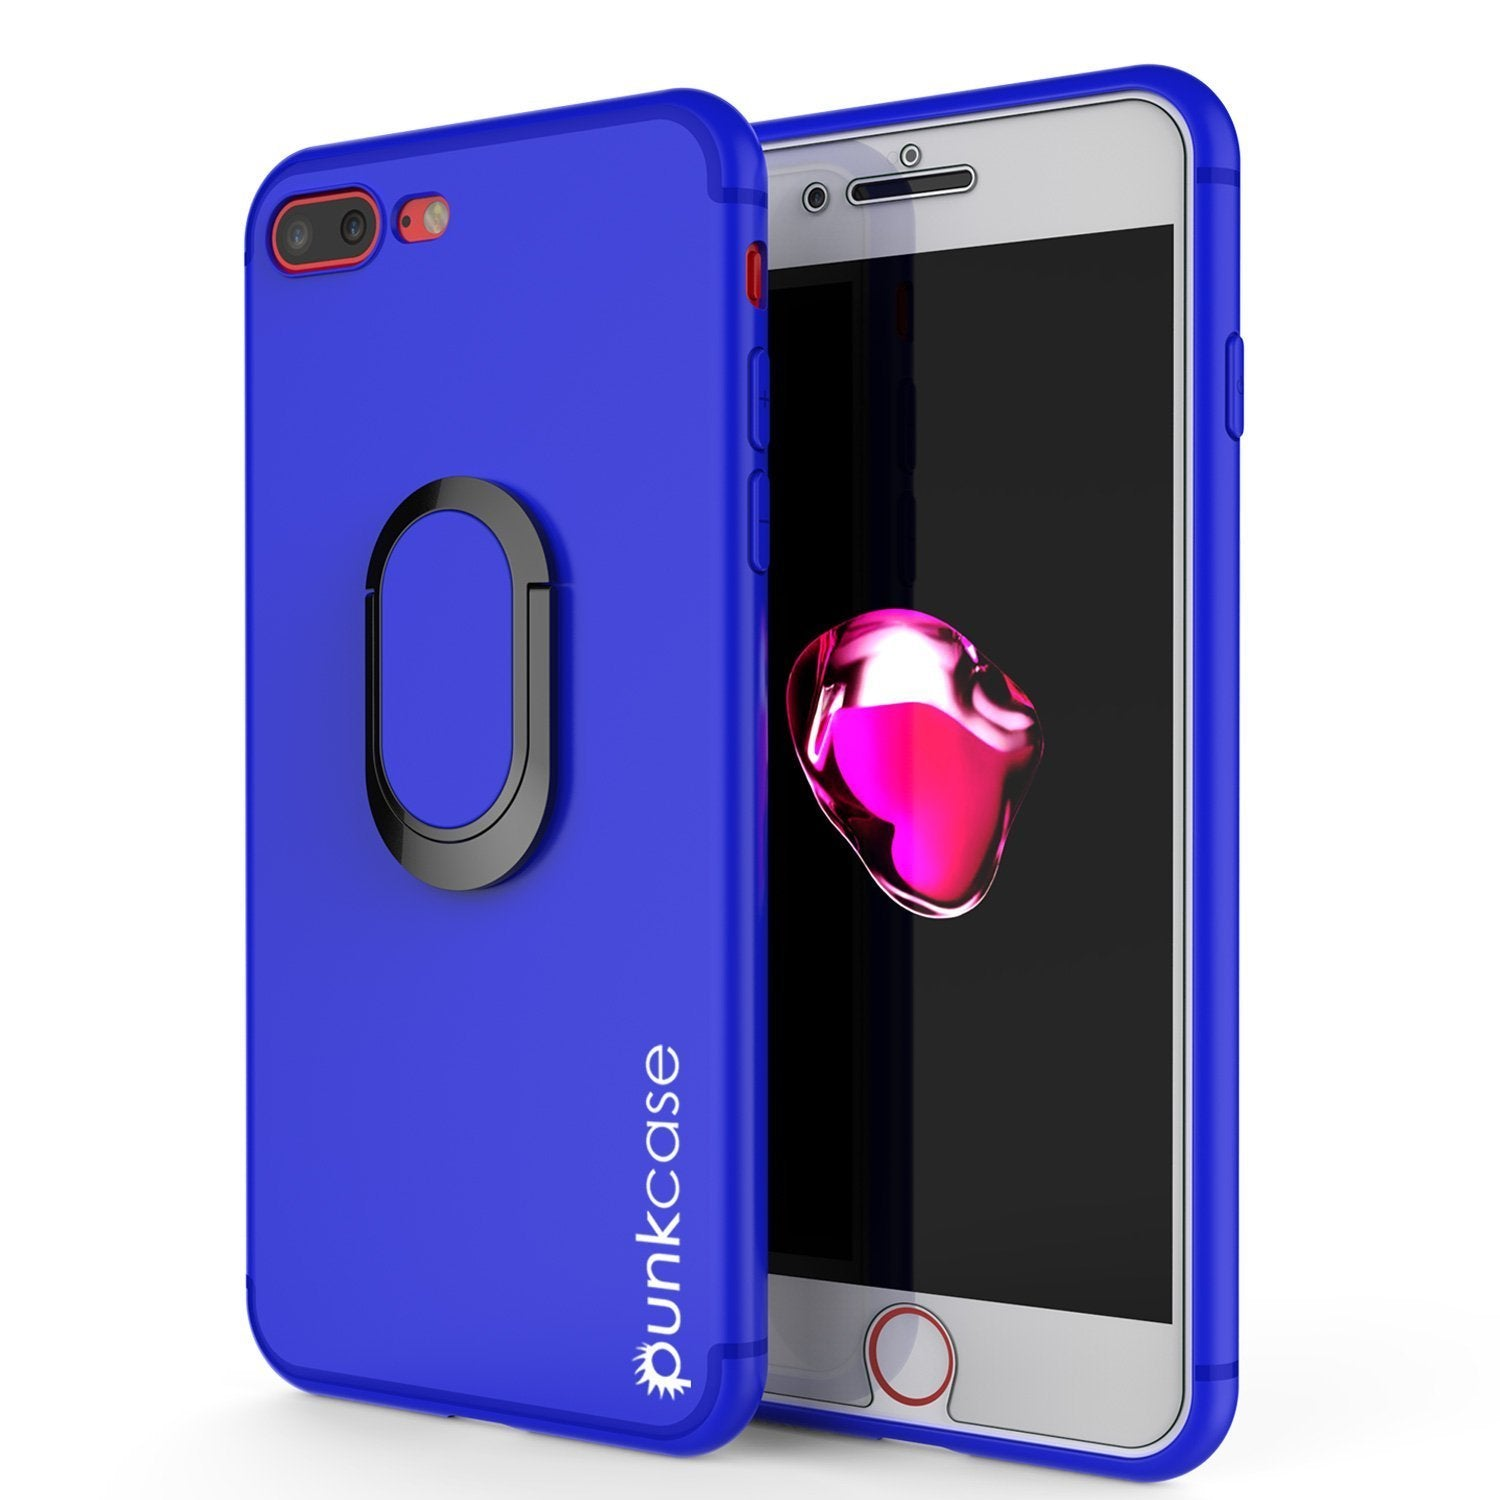 iPhone 8 Plus Case, Punkcase Magnetix Protective TPU Cover W/ Kickstand, Ring Grip Holder & Metal Plate for Magnetic Car Phone Mount PLUS Tempered Glass Screen Protector for Apple iPhone 7+/8+ [Blue]